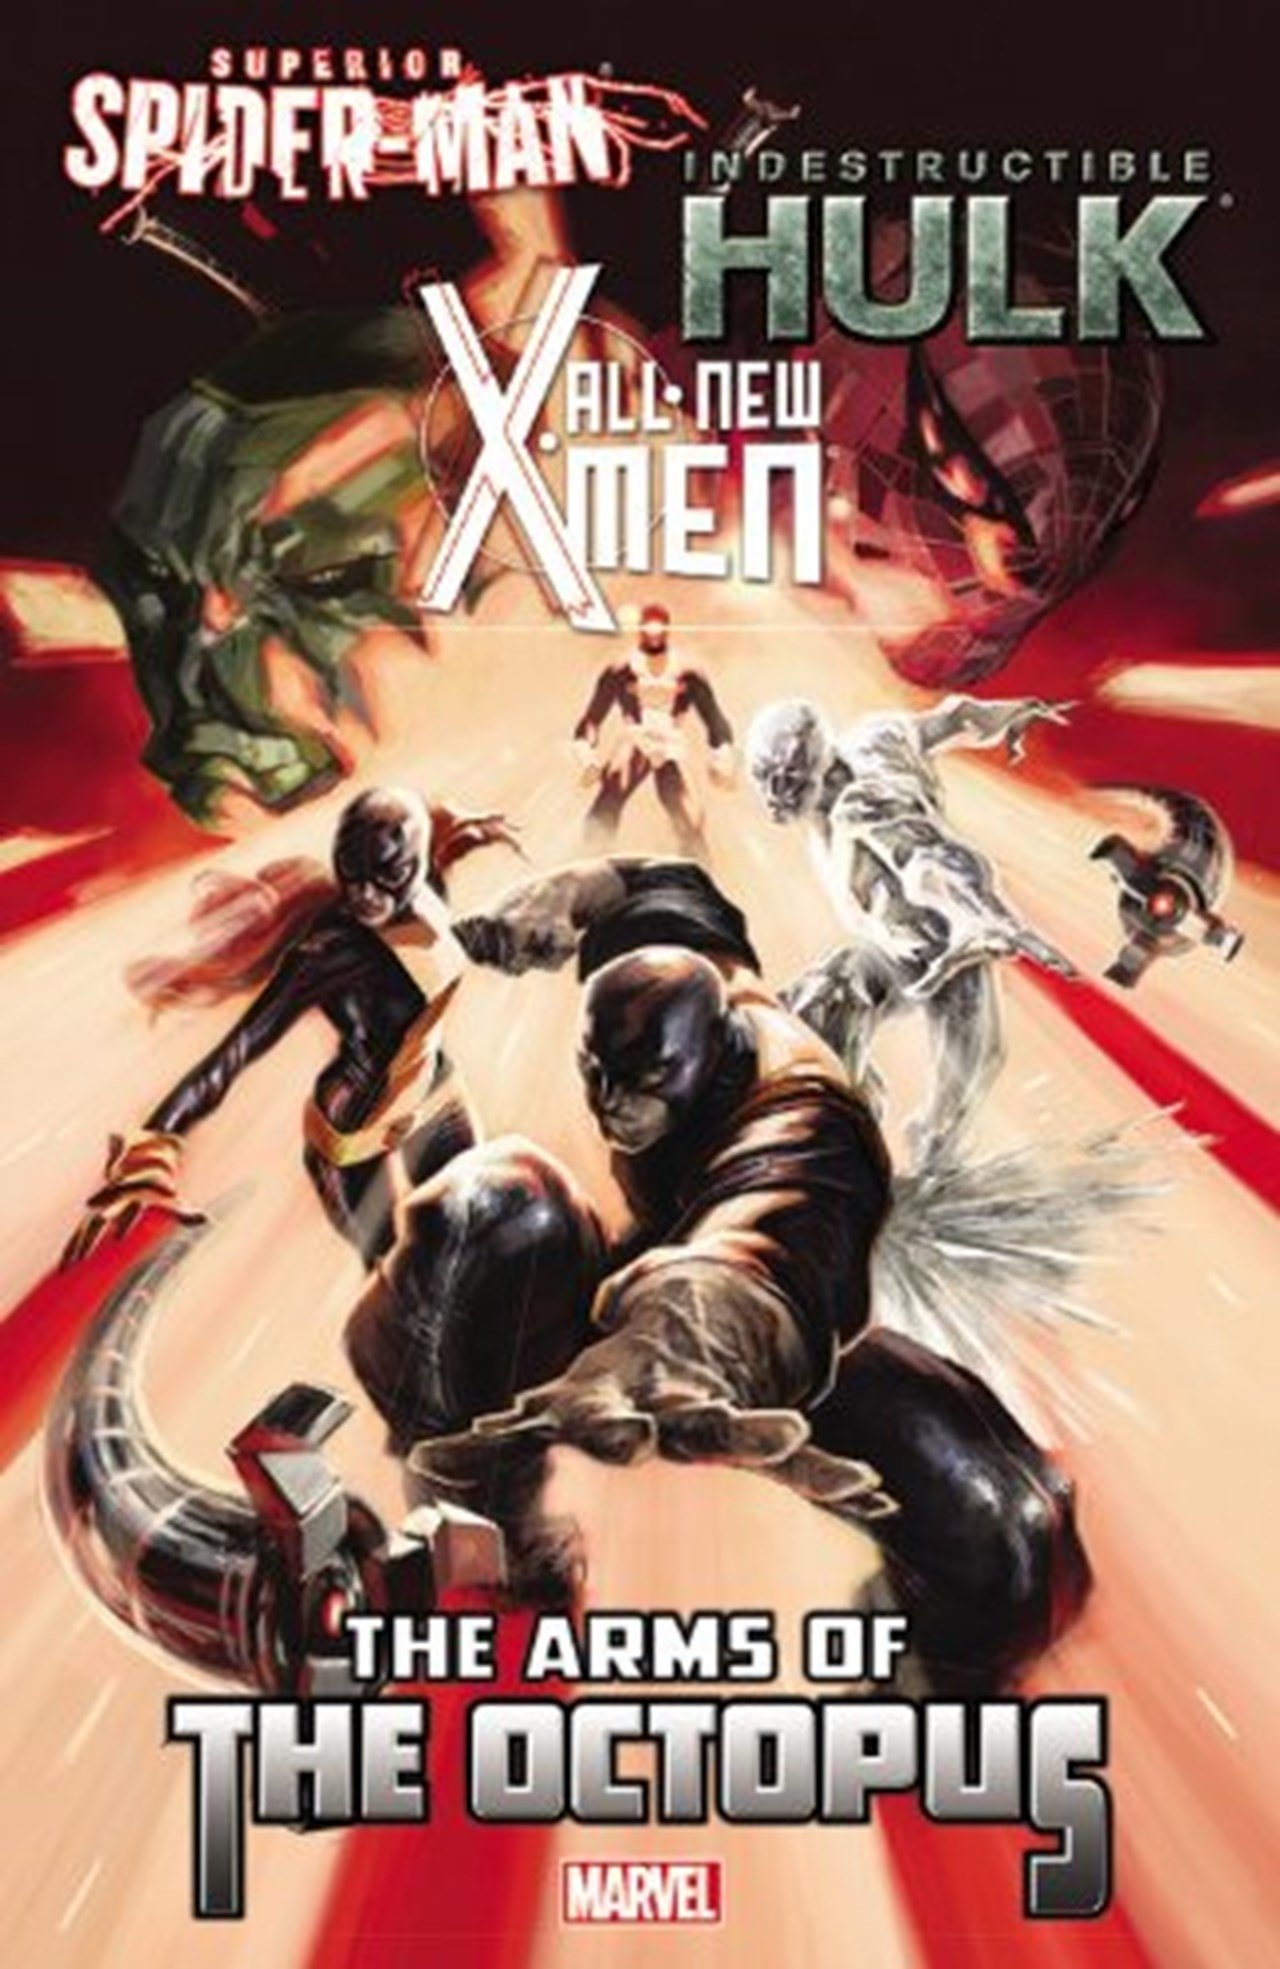 All-New X-Men / Indestructible Hulk / Superior Spider-Man: The Arms of the Octopus - 1